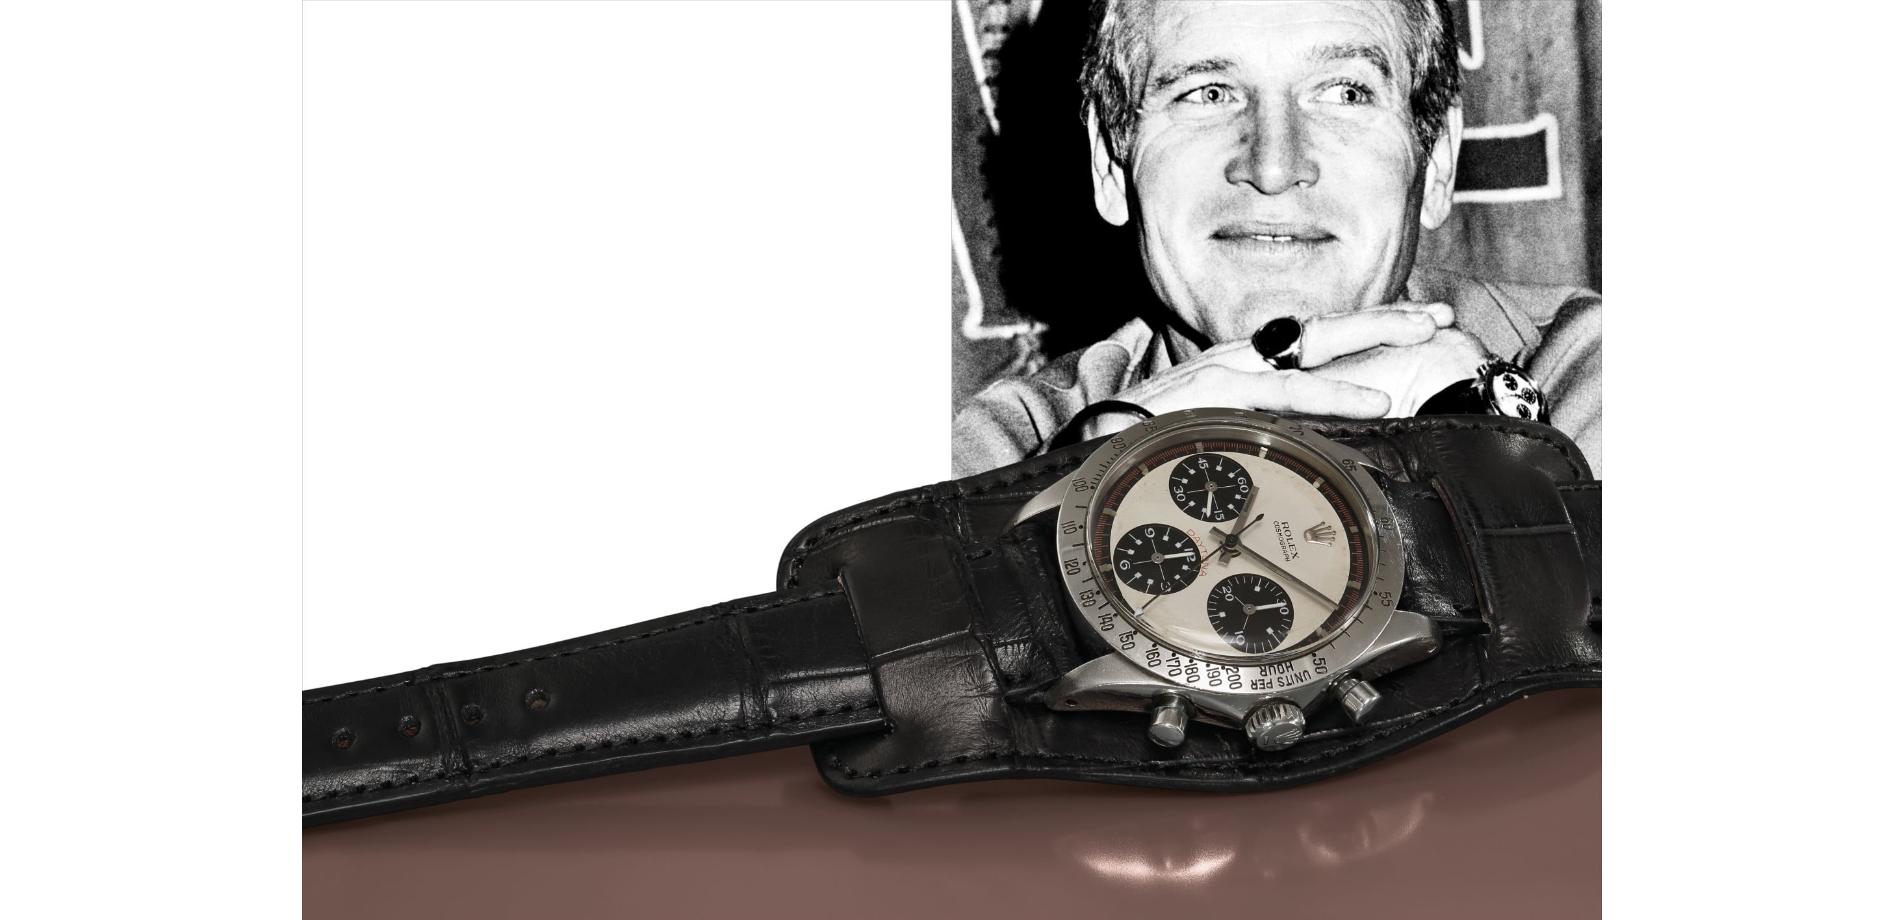 Why Longines, Blancpain and other luxury brands recreate vintage watches loved by celebrities